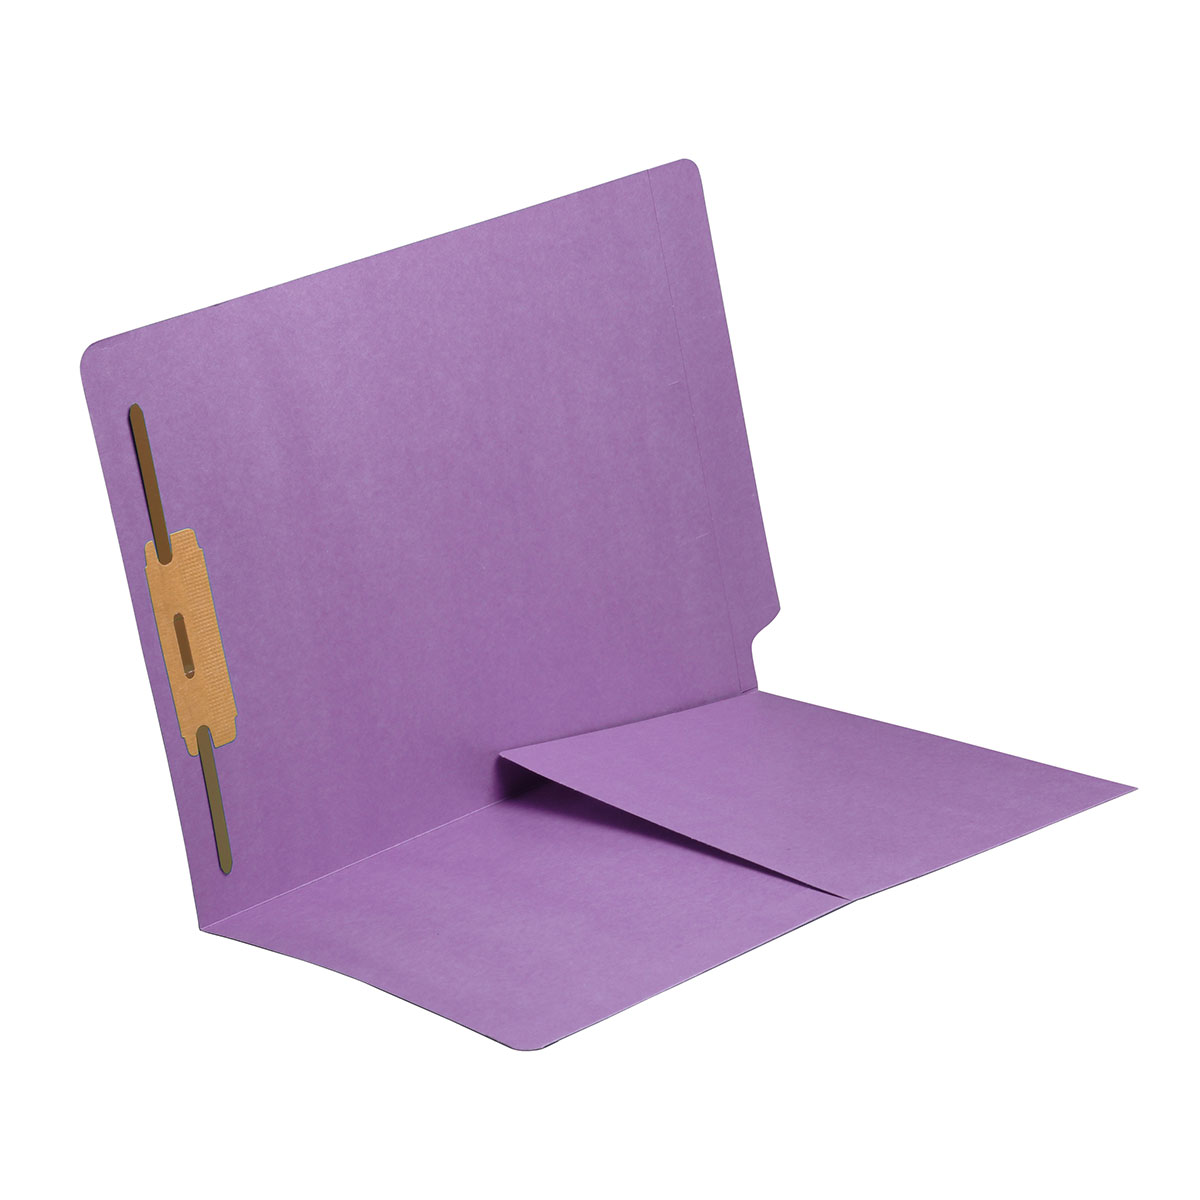 S-9006-LAV - 11 pt Lavender Folders, Full Cut End Tab, Letter Size, 1/2 Pocket Inside Front, Fastener Pos #1 (Box of 50)